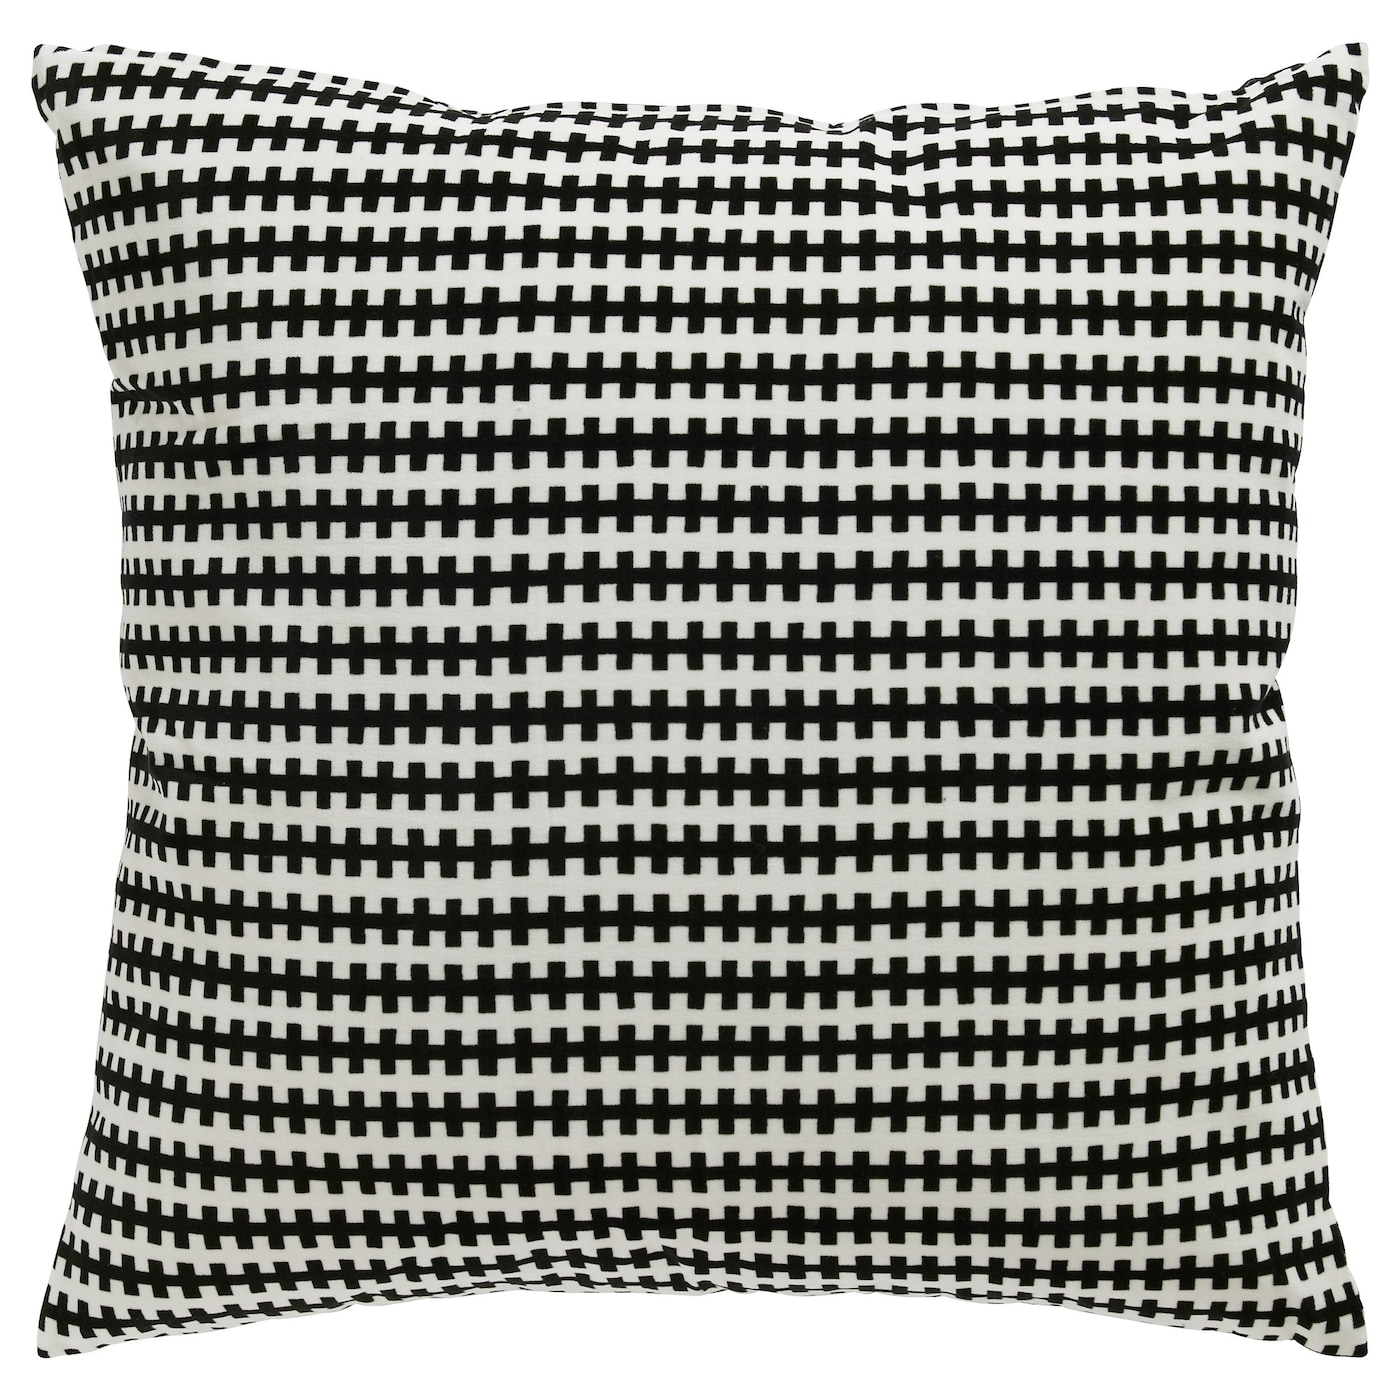 STOCKHOLM Cushion Black white 50x50 cm IKEA